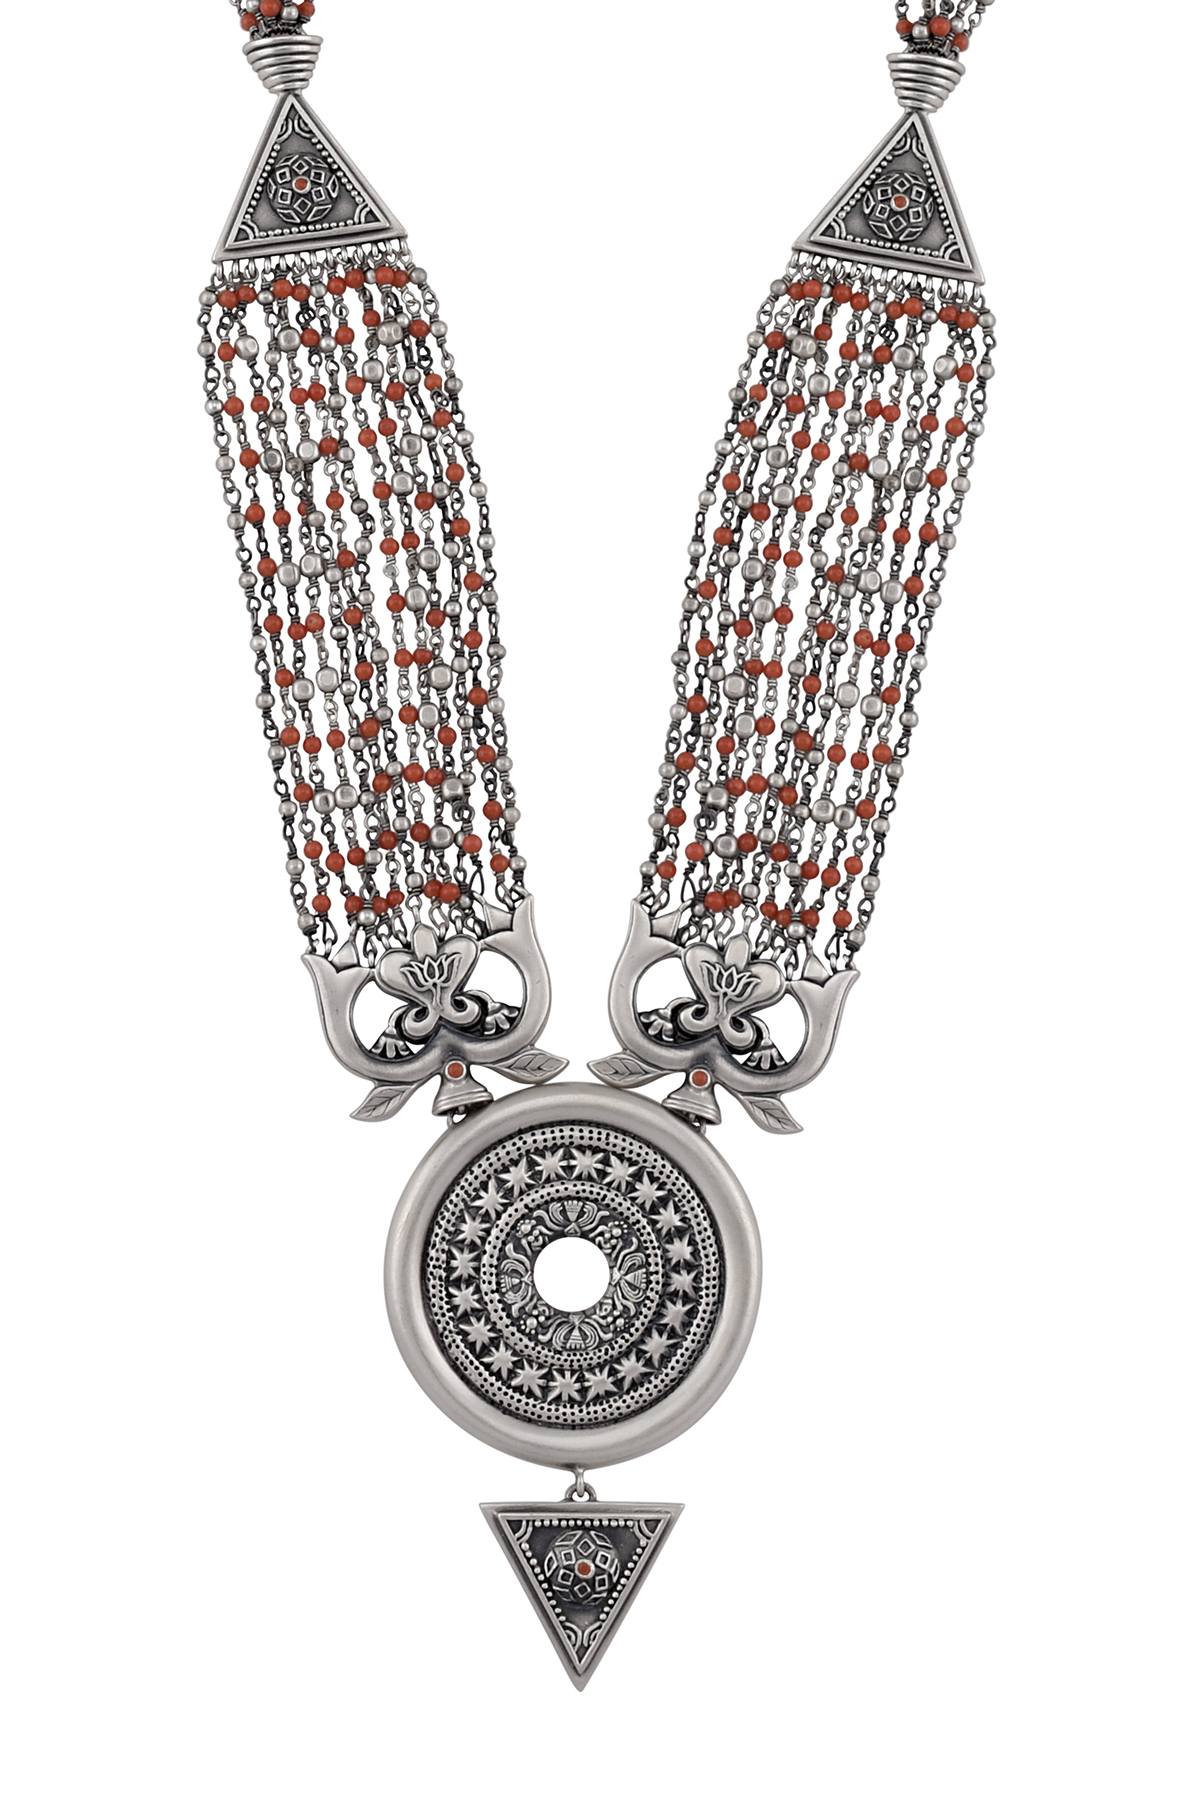 Silver Intricate Radial Beaded Necklace